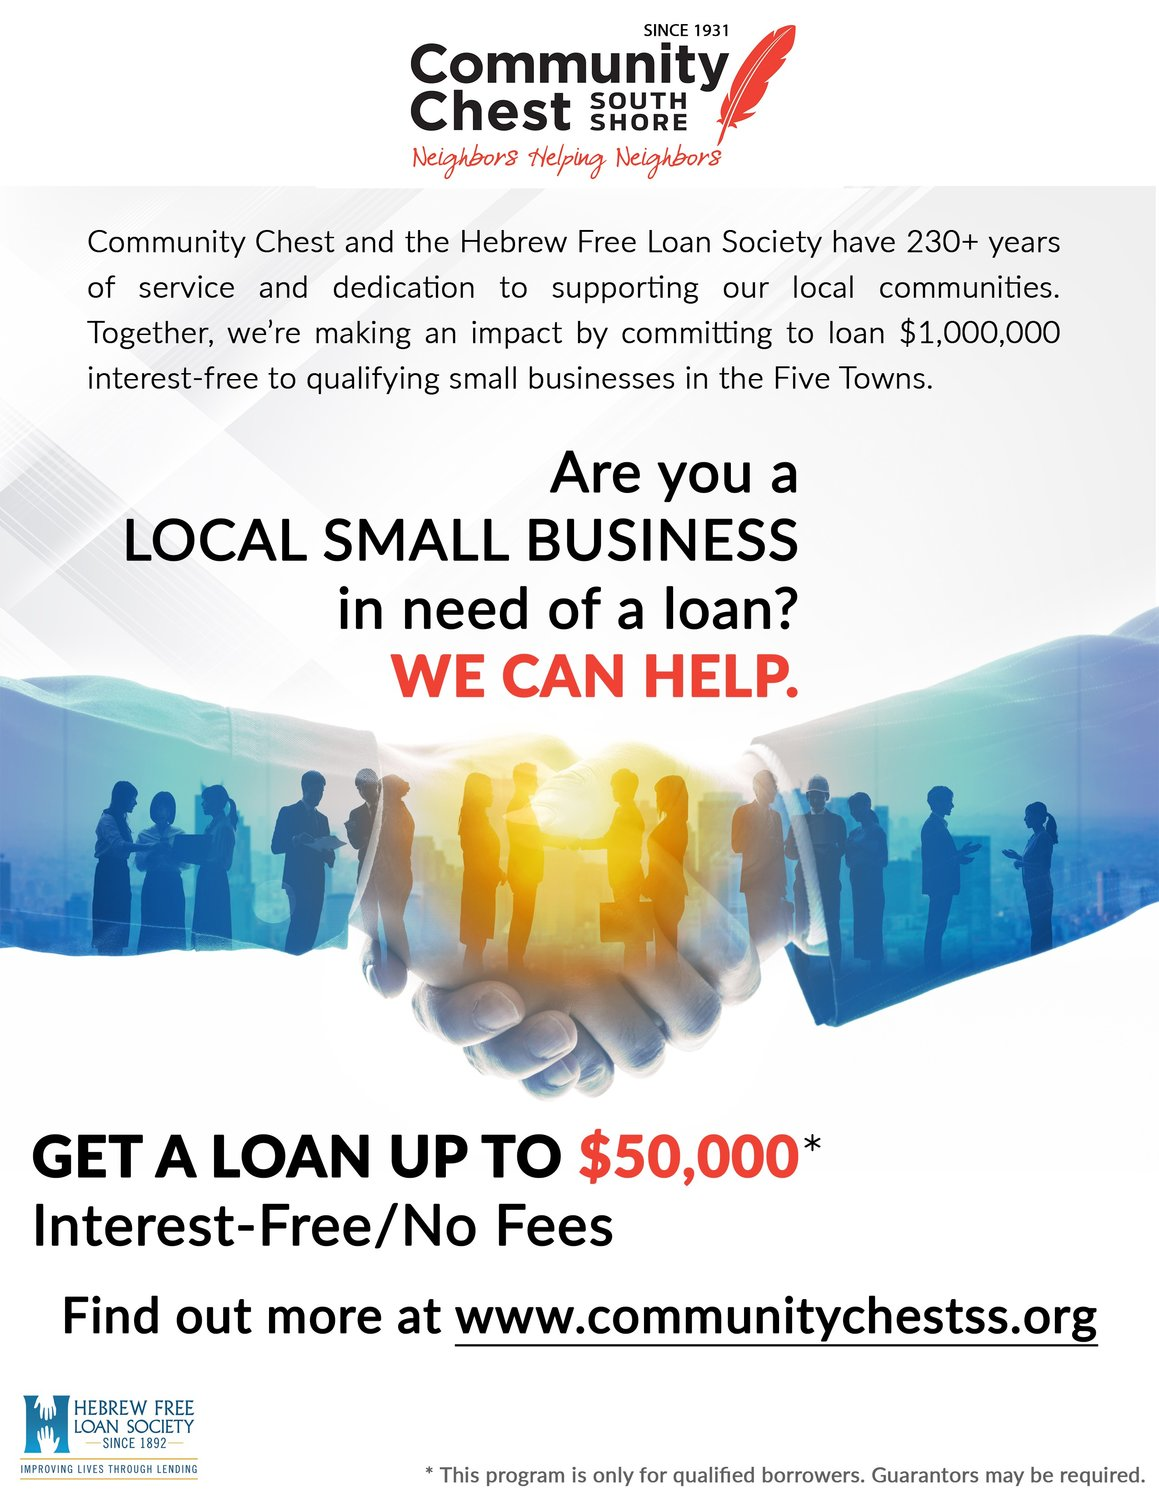 Community Chest South Shore and the Hebrew Free Loan Society have joined forces to offer interest free loans to small businesses in the Five Towns and surrounding communities.